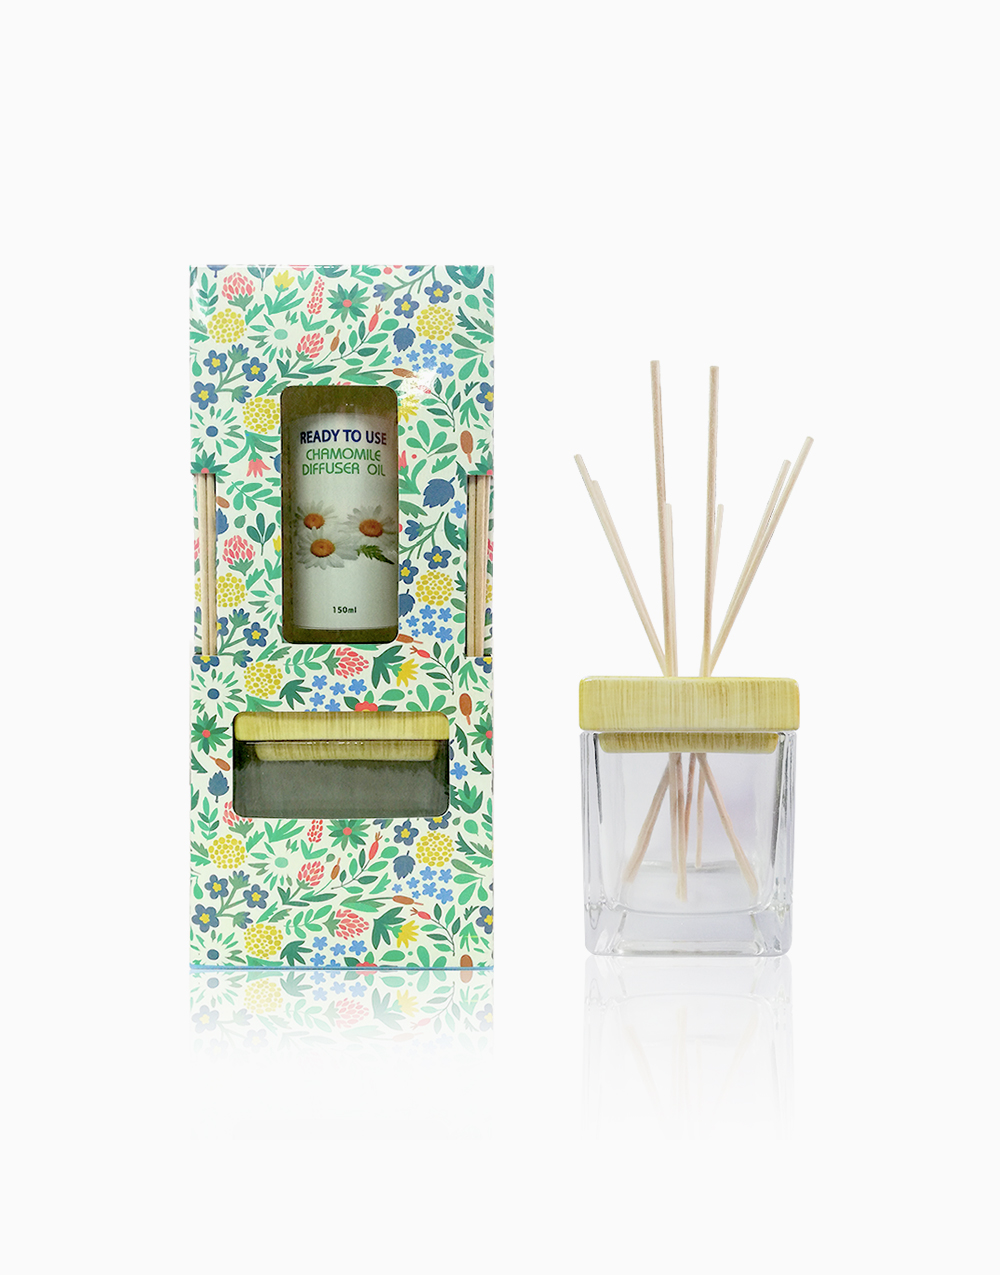 Floral Reed Diffuser Gift Set Chamomile Scent with Free POREX Reed Sticks by Pure Bliss